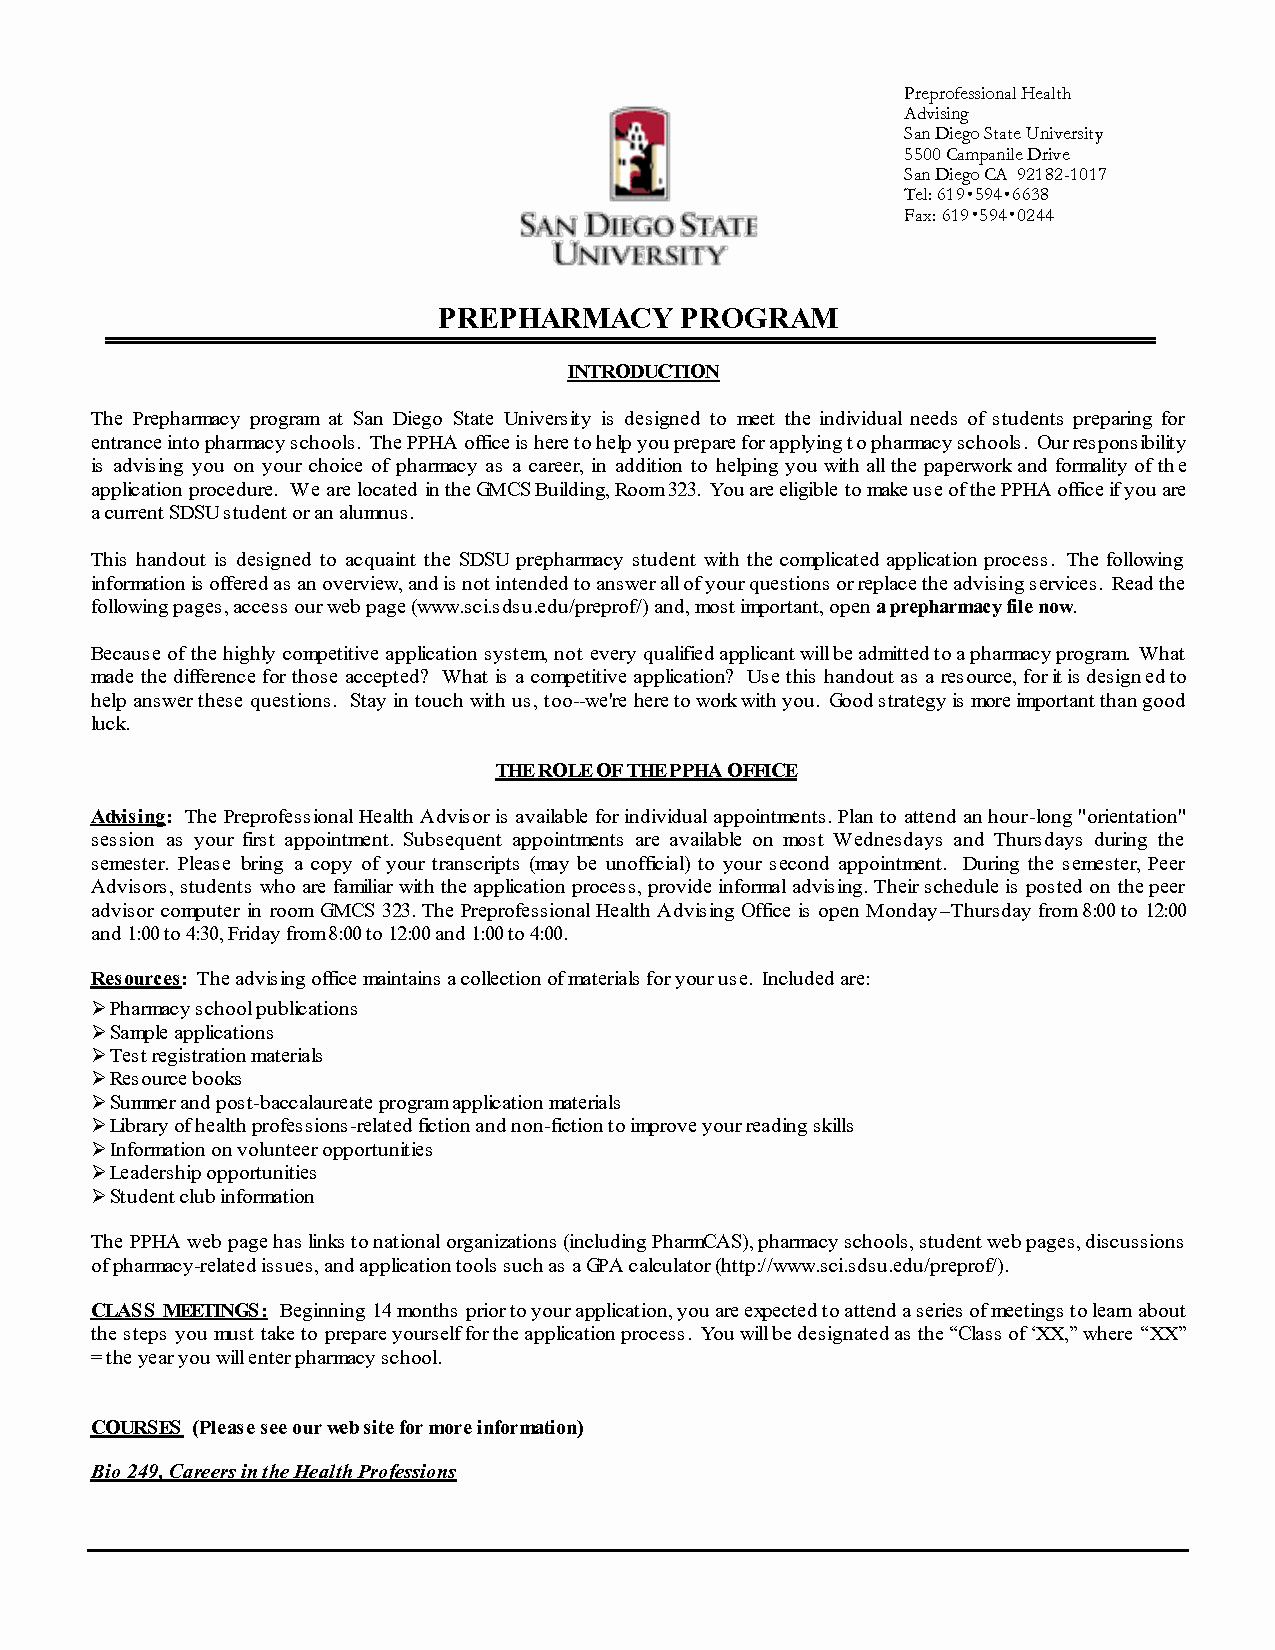 Law School Admissions Resume Sample Law School Letter Of Recommendation Template Examples